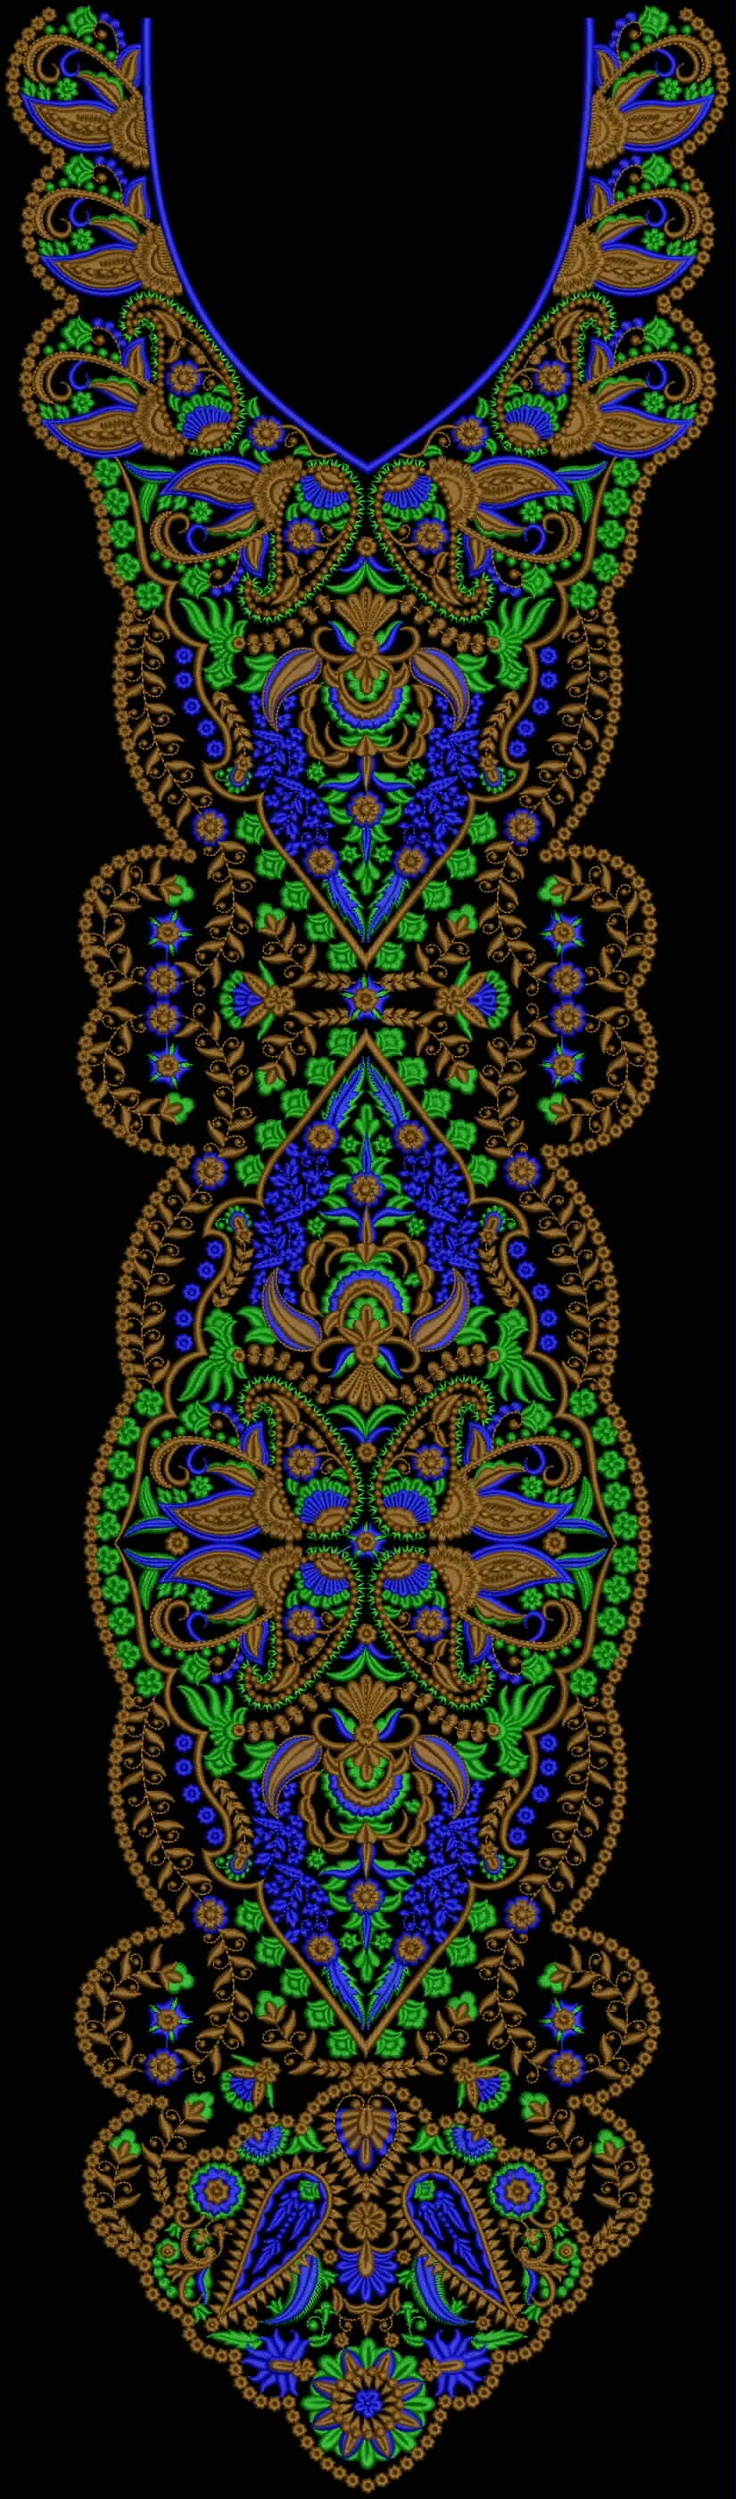 Latest Embroidery Designs For Sale, If U Want Embroidery Designs Plz Contact (Khalid Mahmood, +92-300-9406667) www.embroiderydesignss.blogspot.com Design# Ruksa9